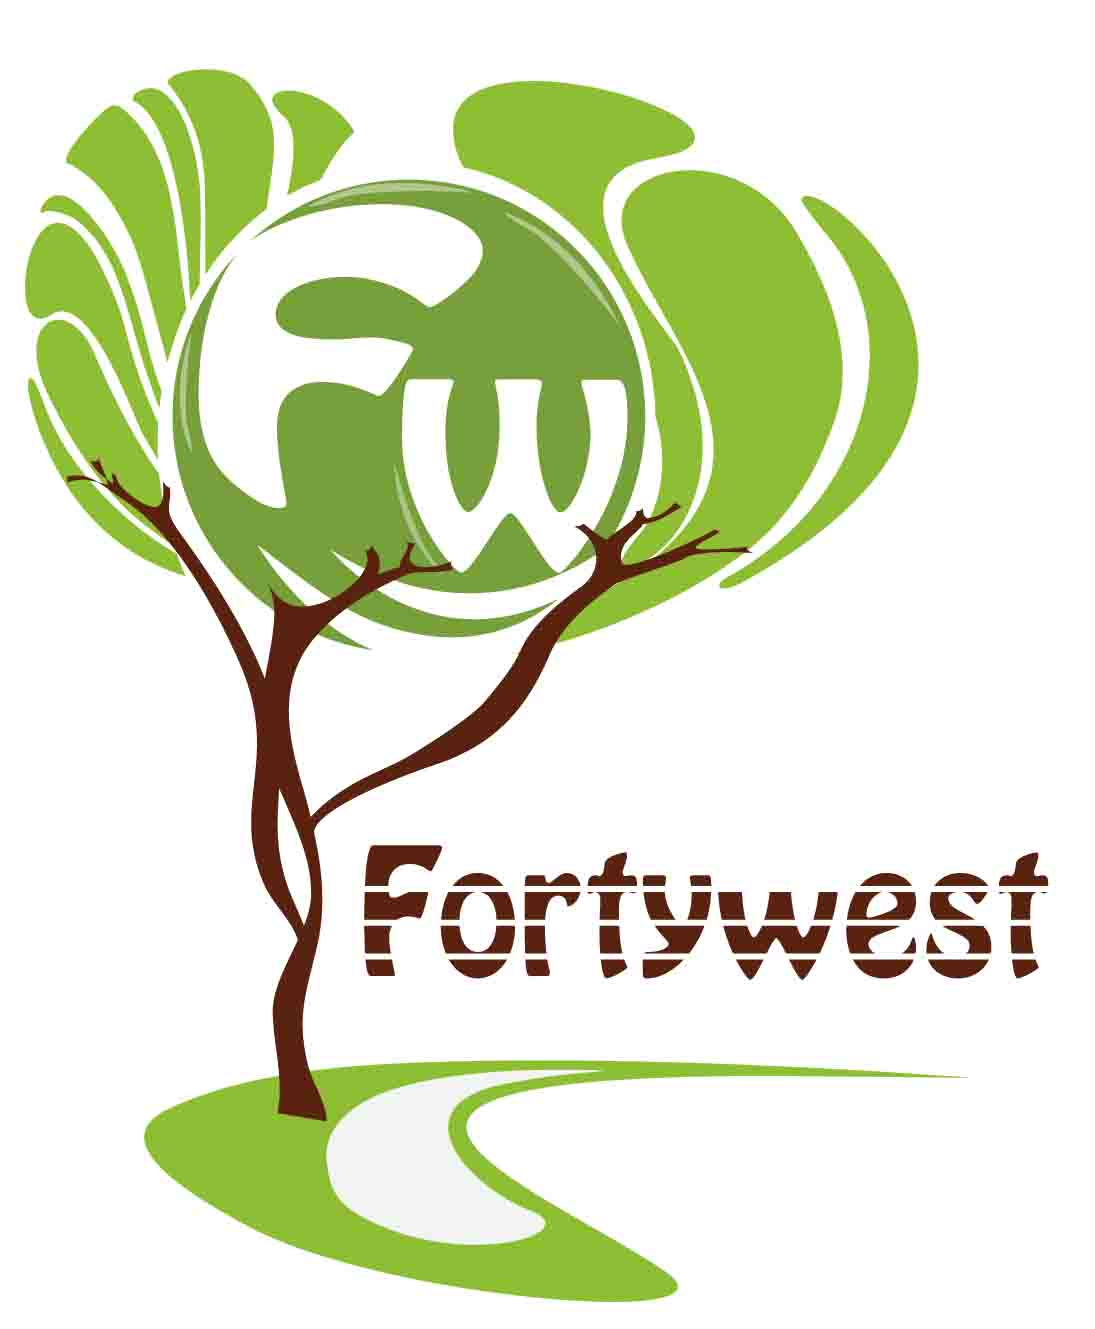 Logo Design by Aj Ong - Entry No. 95 in the Logo Design Contest Unique Logo Design Wanted for Forty West.